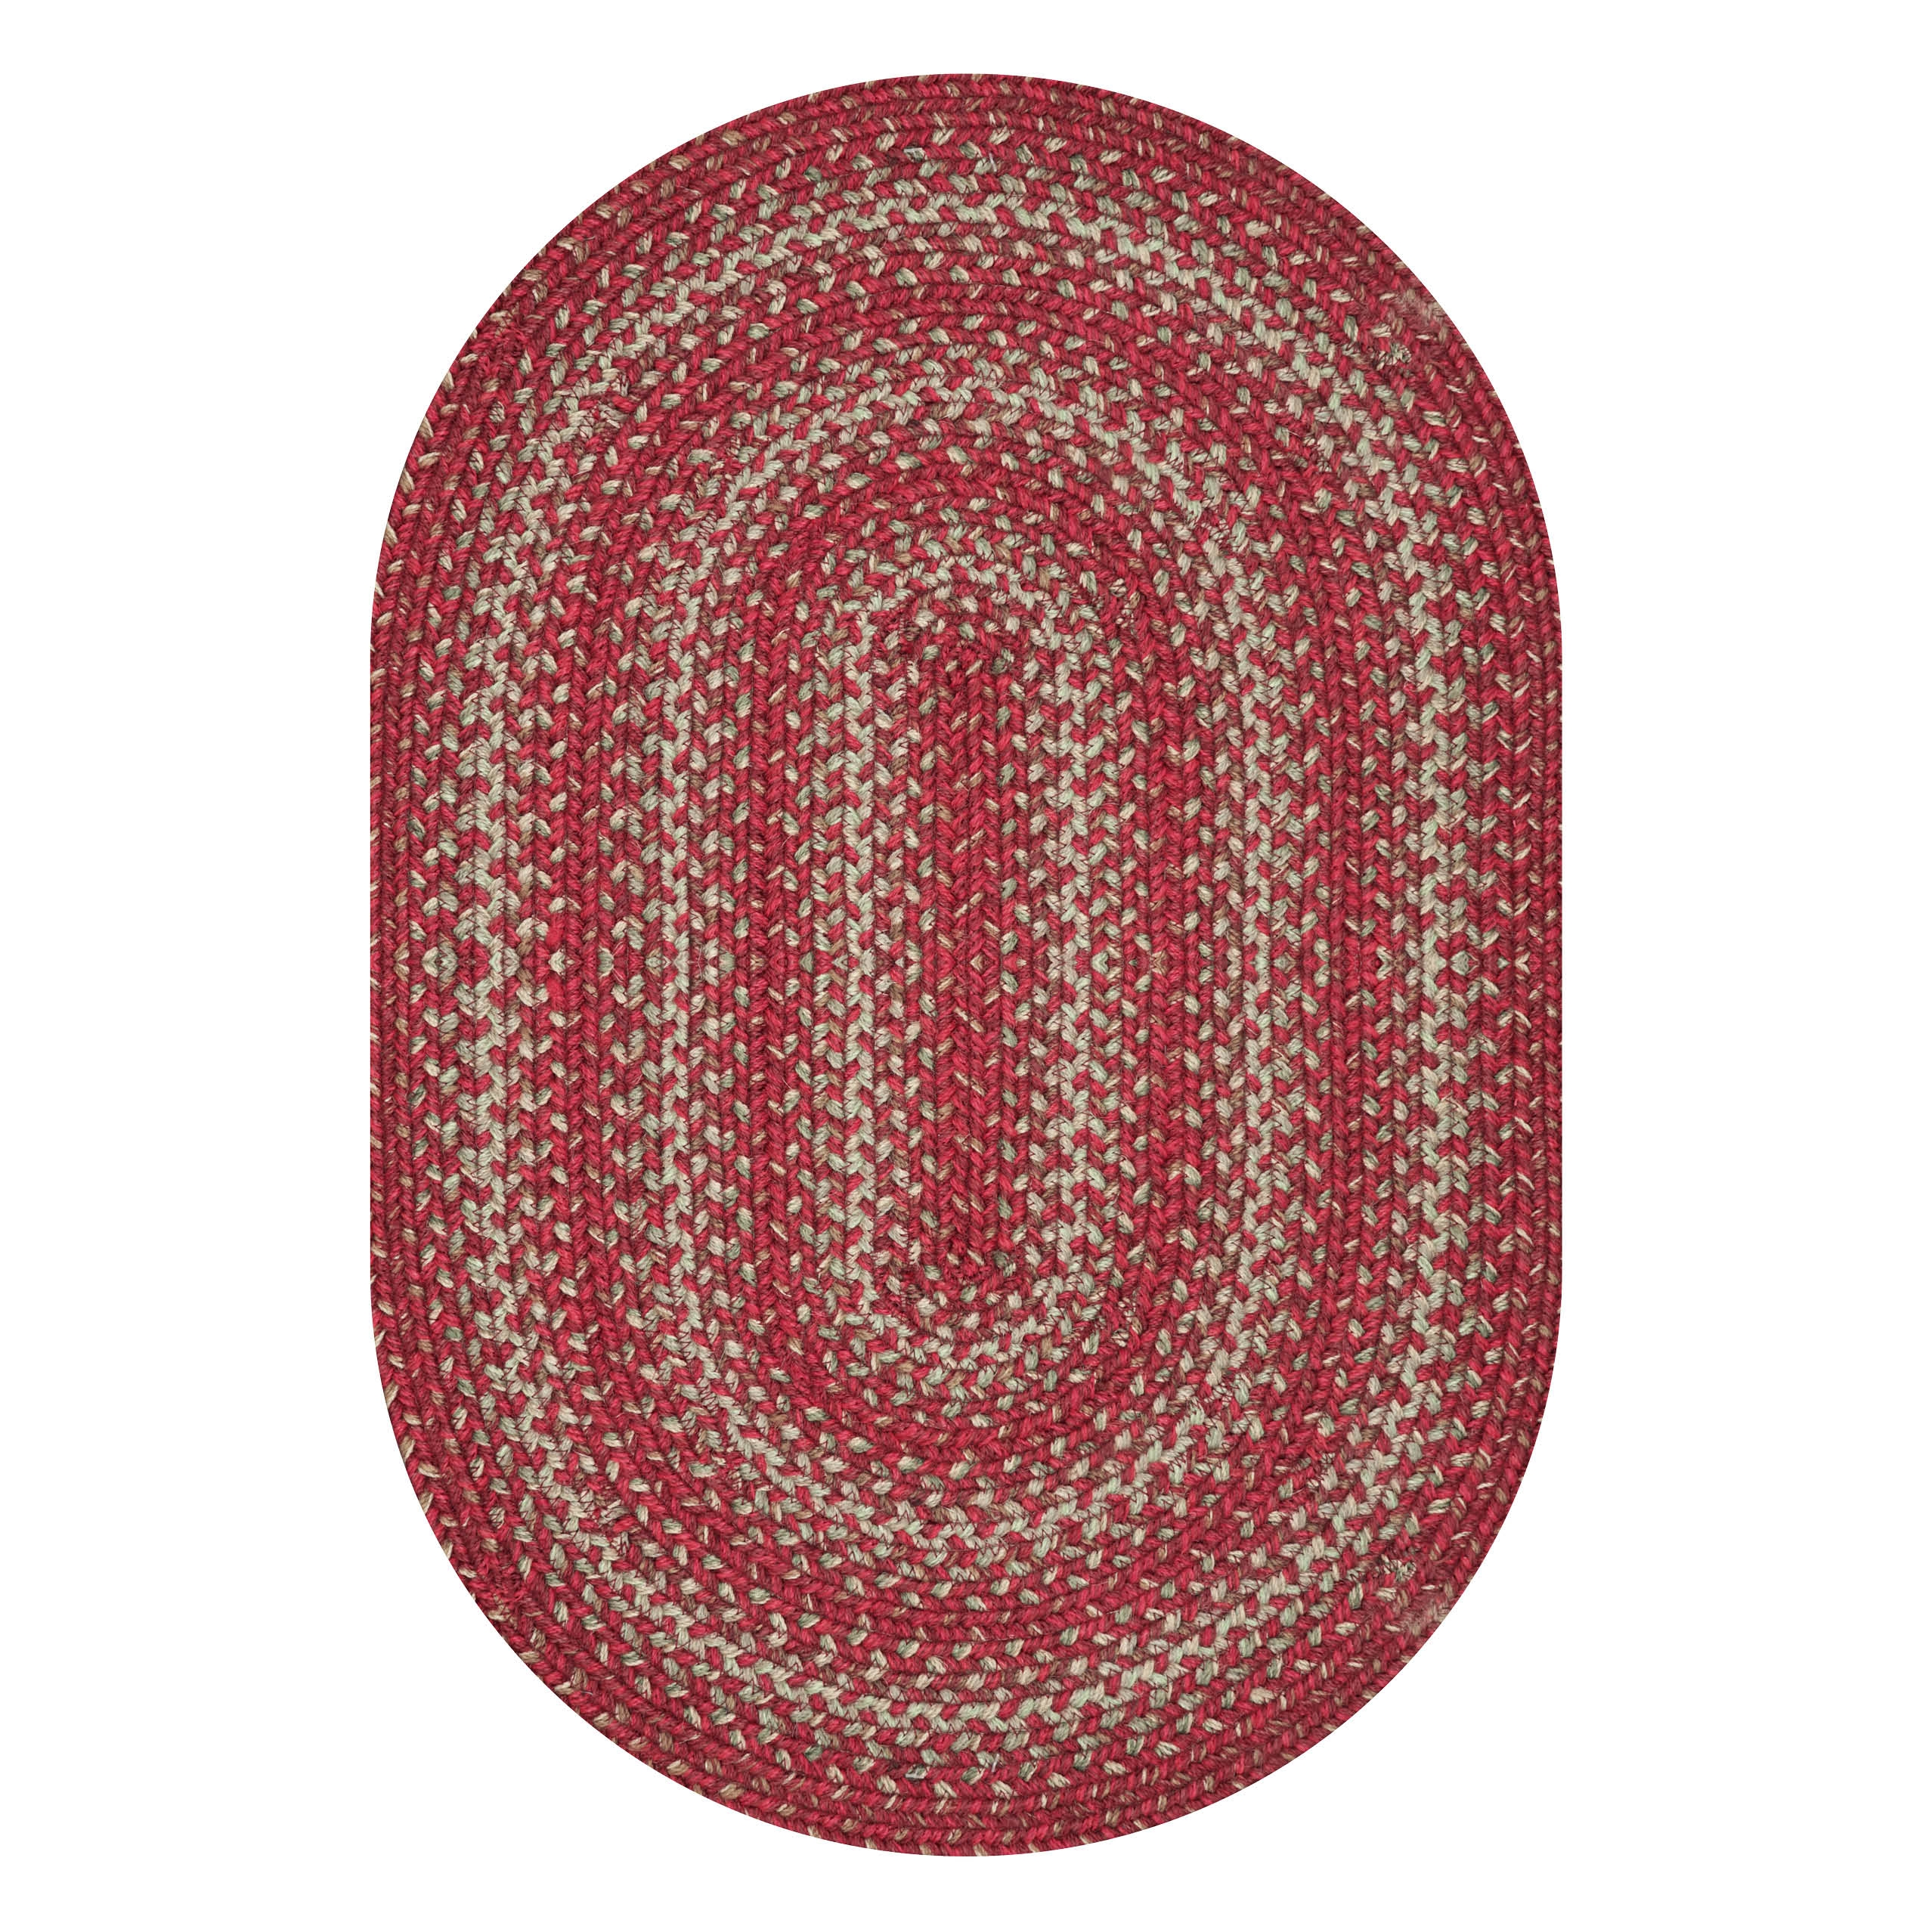 Apple Pie Red Jute Braided Oval Rugs